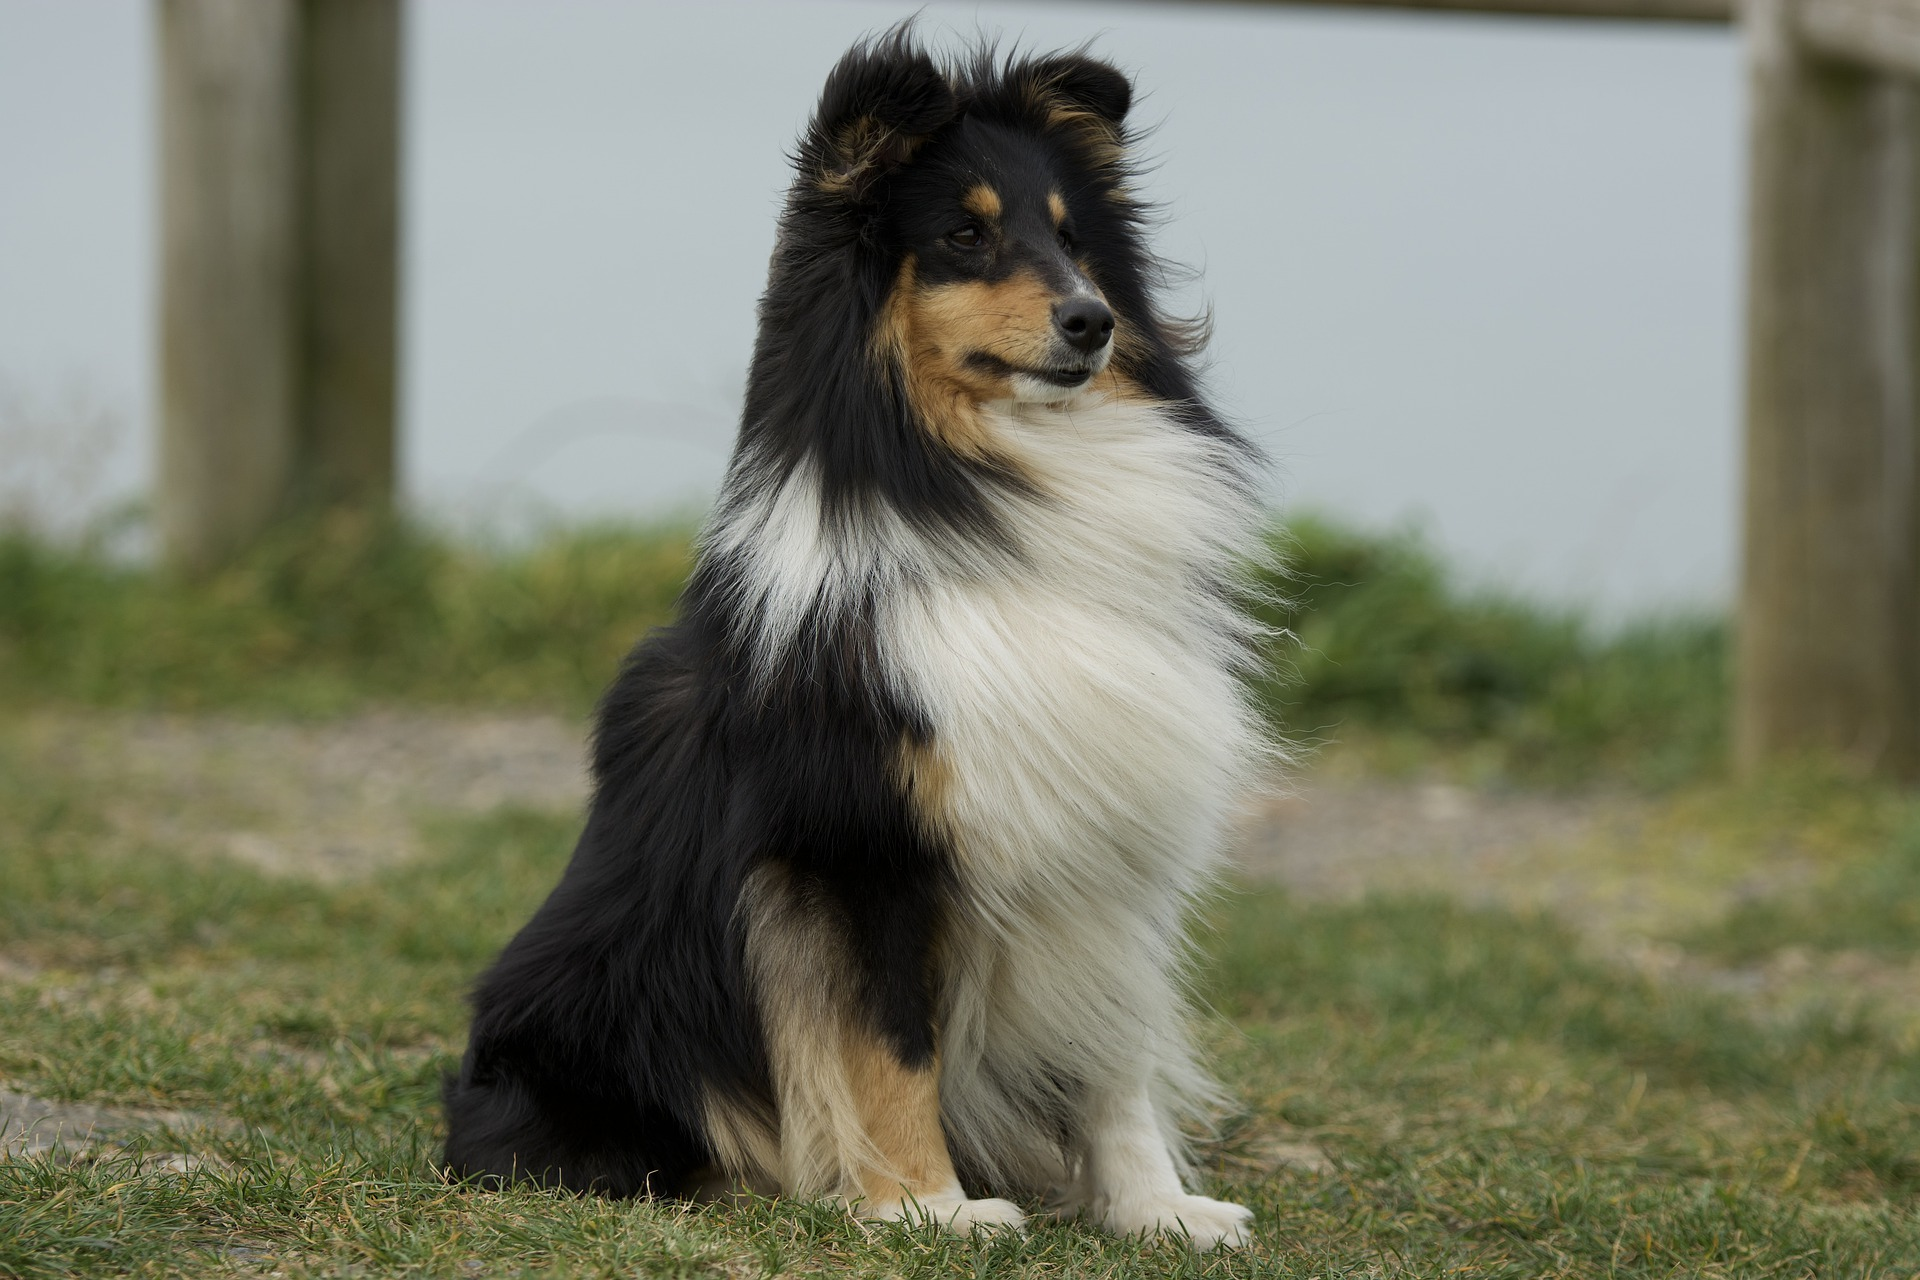 A brown and tan Shetland Sheepdog with white markings.